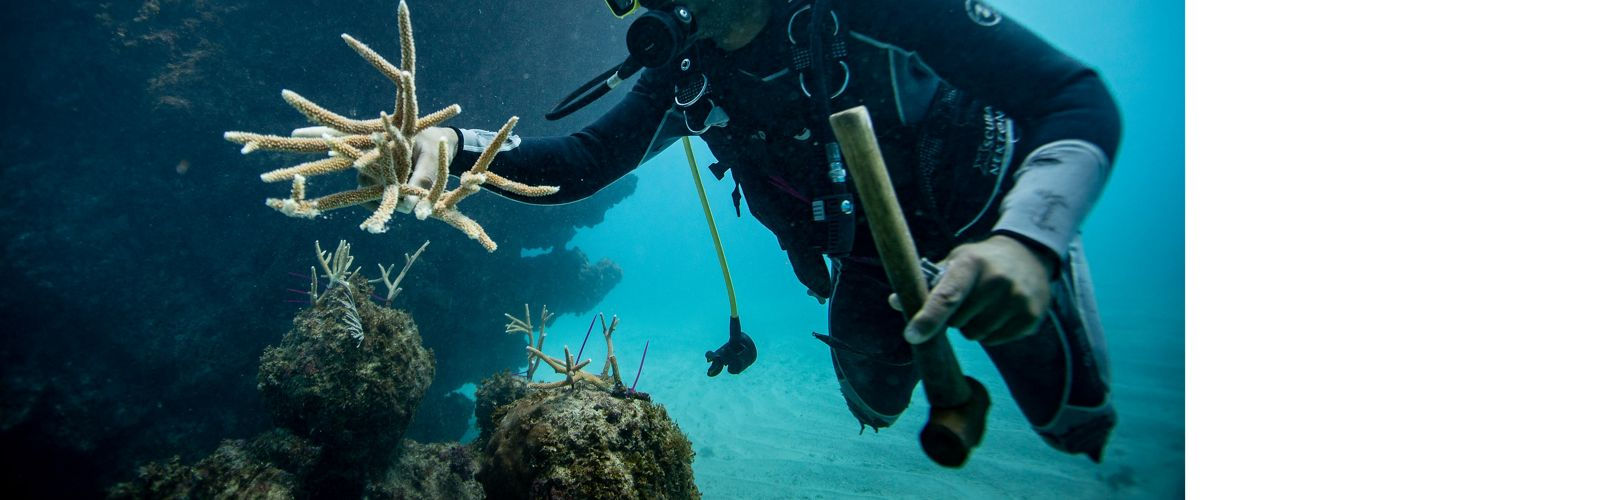 A diver repairs a coral reef in the Dominican Republic.